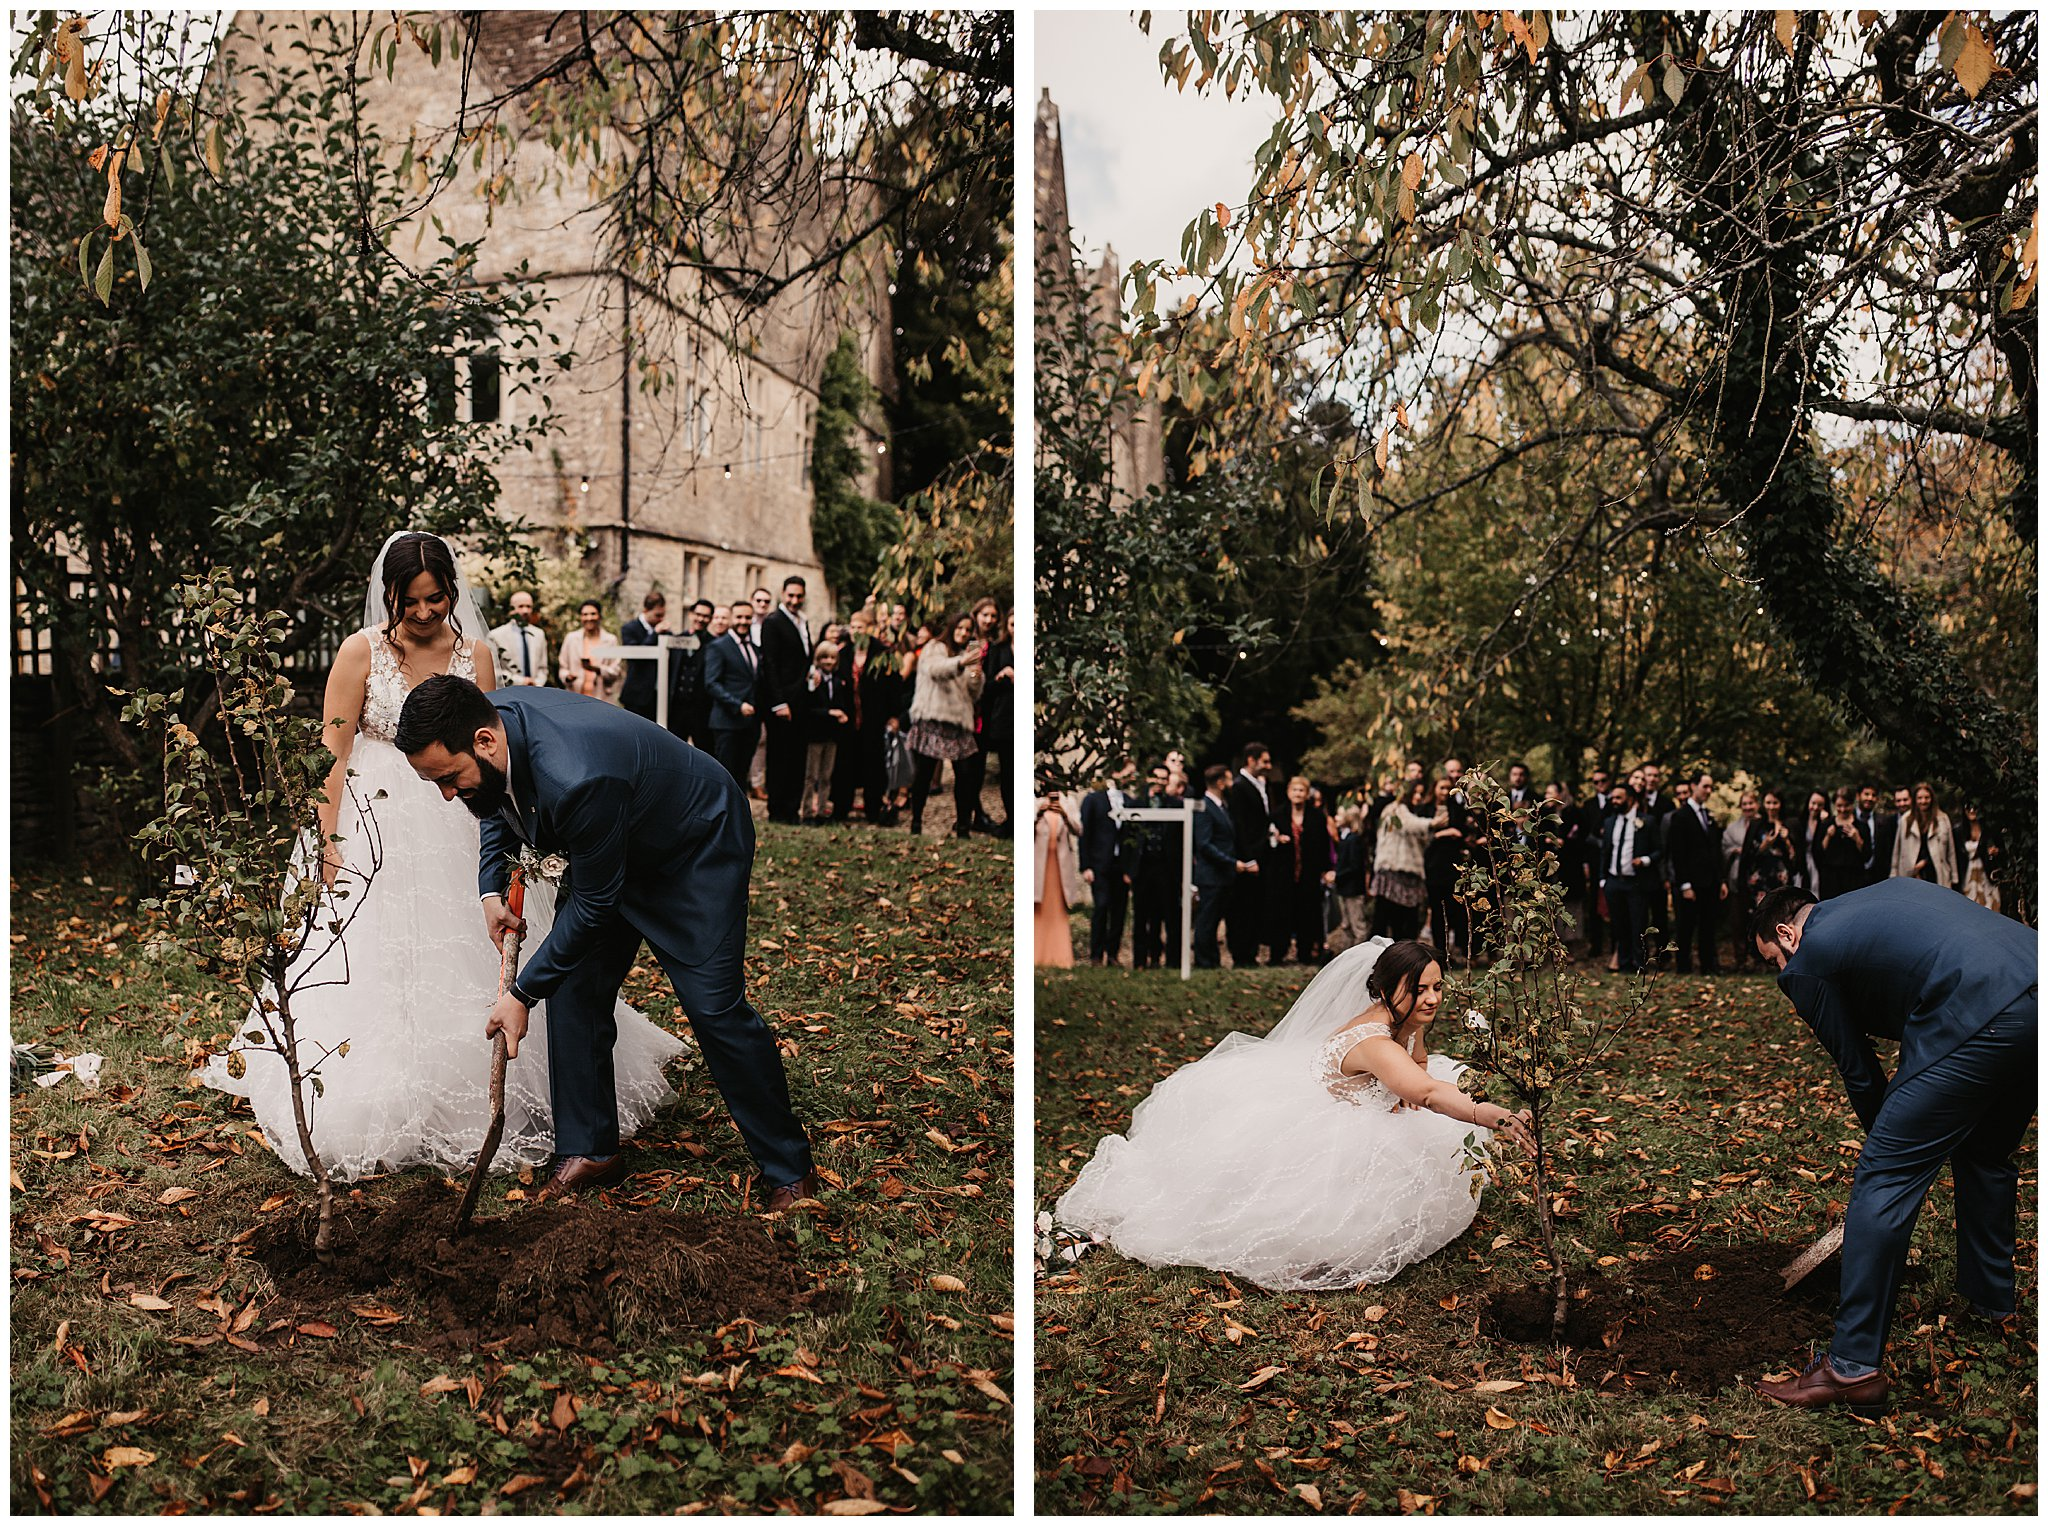 Max & Ksenia Autumnal Wiltshire Wedding-297.jpg